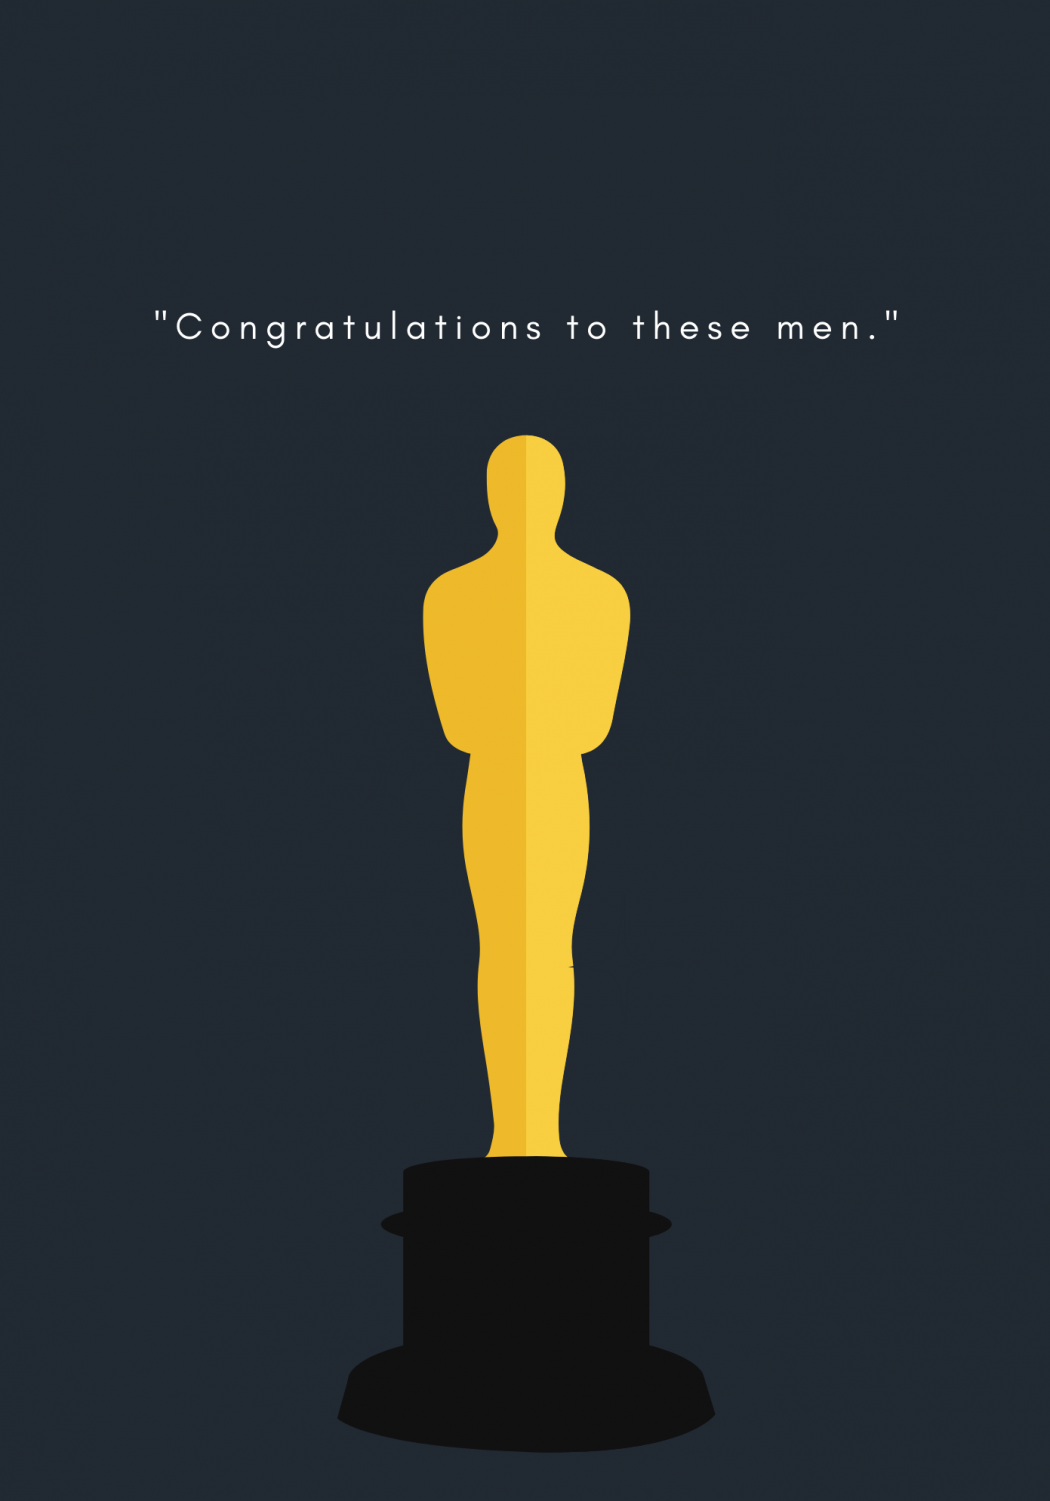 Many critics have called out the bias of the Academy. In one tweet, actress Issa Rae reacted to the 2020 nominations, saying,